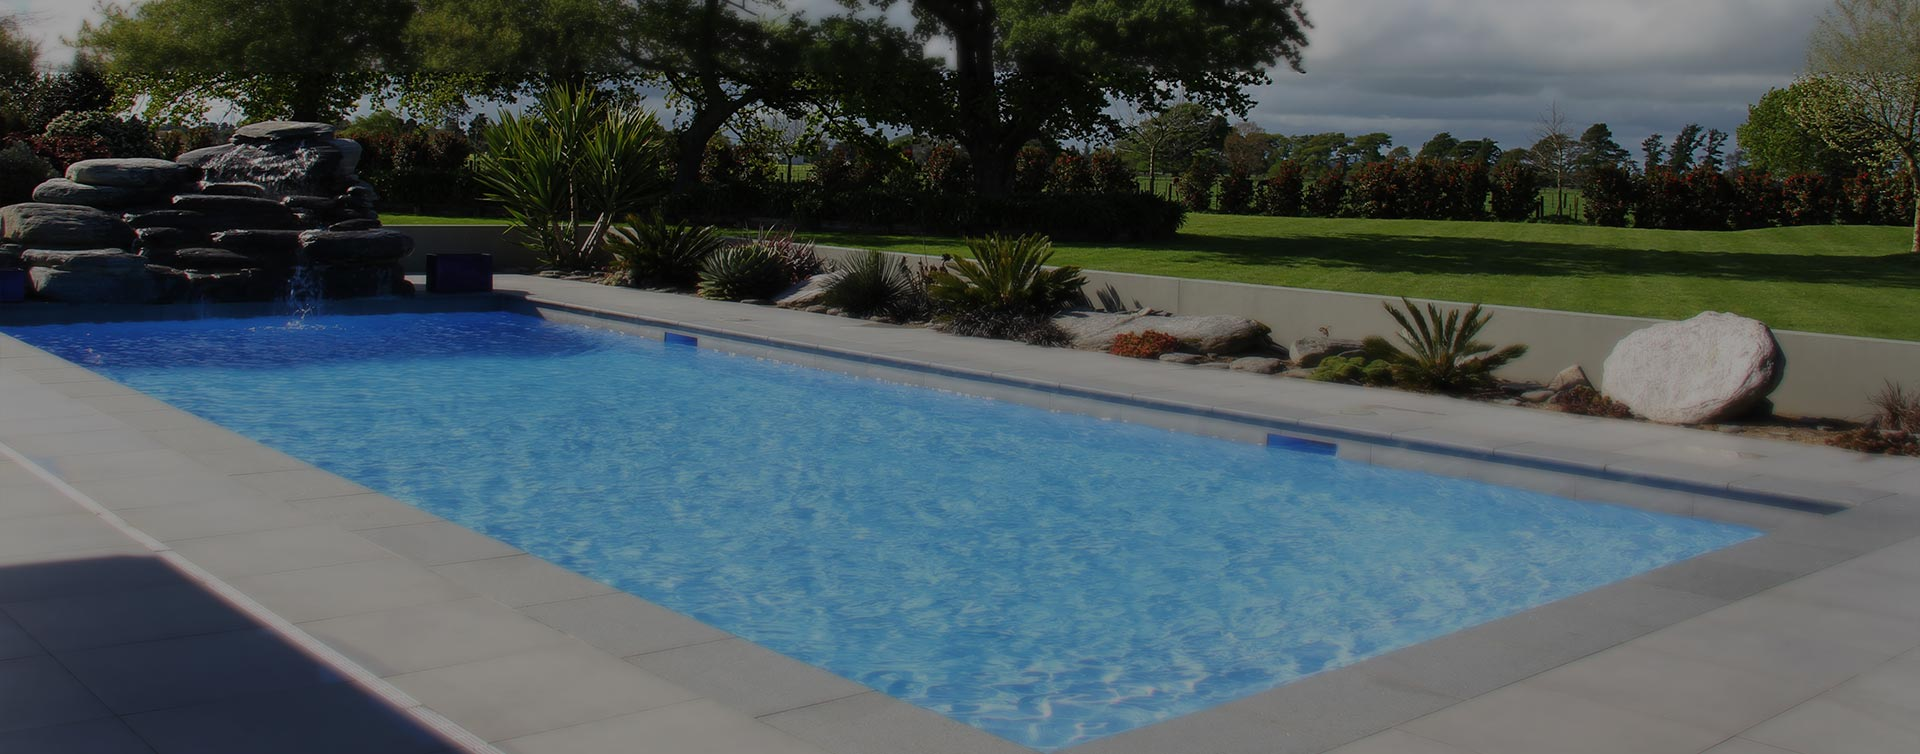 Hamilton pool installation in ground pools and landscaping for Pool design hamilton